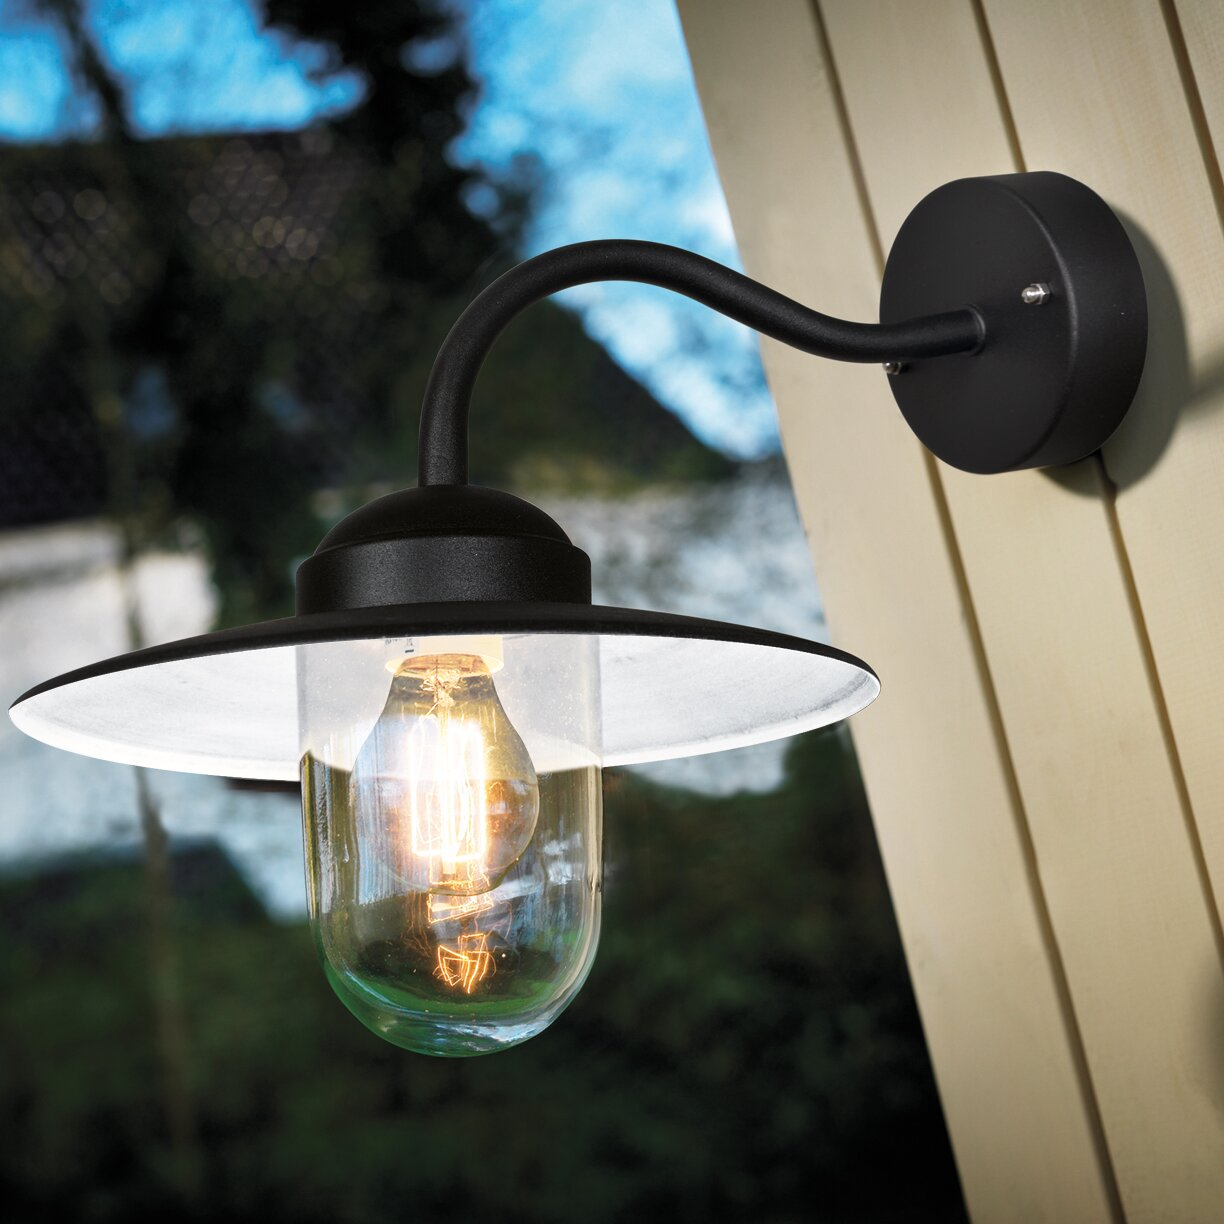 Luxembourg Wall Light With Pir : Nordlux Luxembourg 1 Light Outdoor Fisherman Light & Reviews Wayfair UK